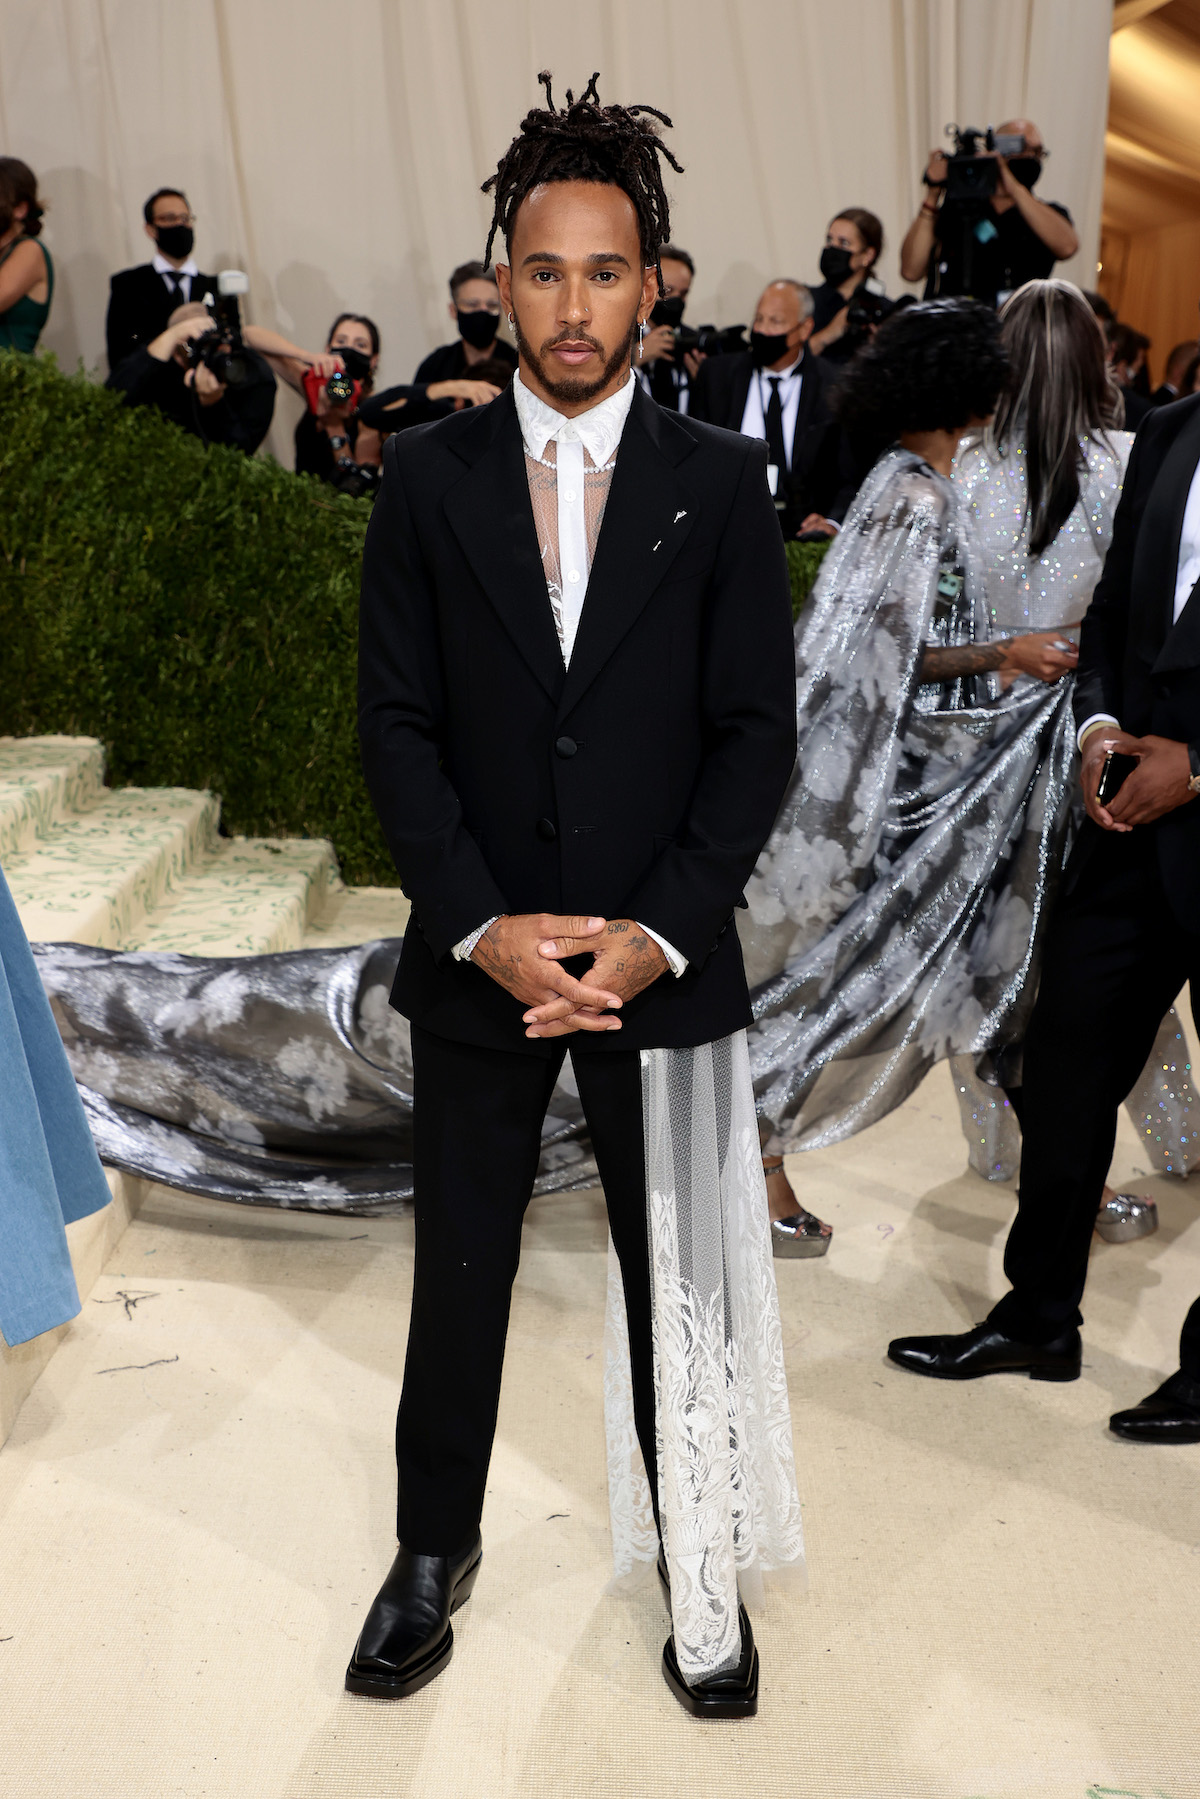 Lewis Hamilton at the 2021 Met Gala, just one of many sports stars there